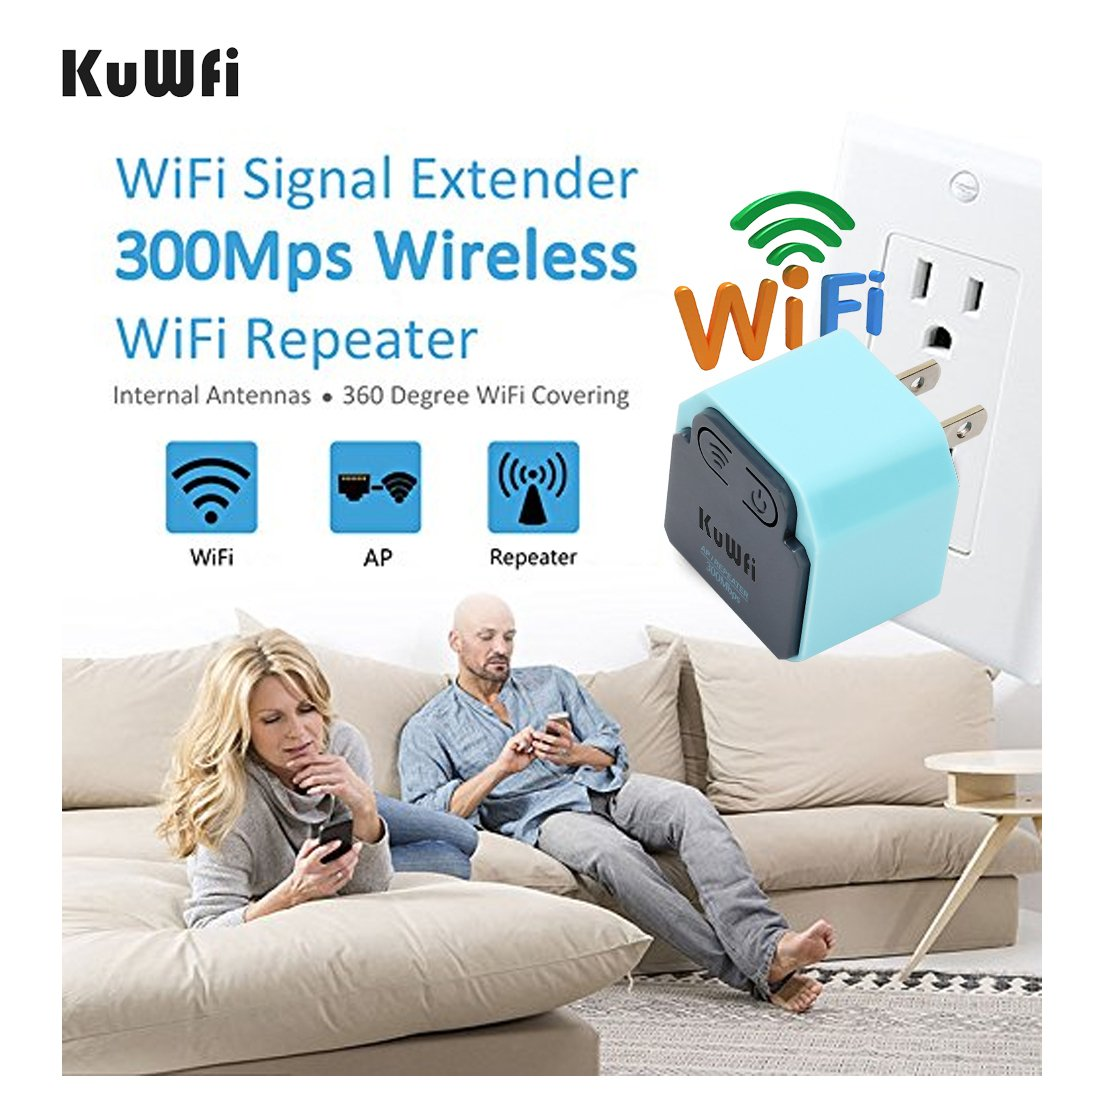 Networking Products 300Mbps WIFI Extender KuWFi MINI